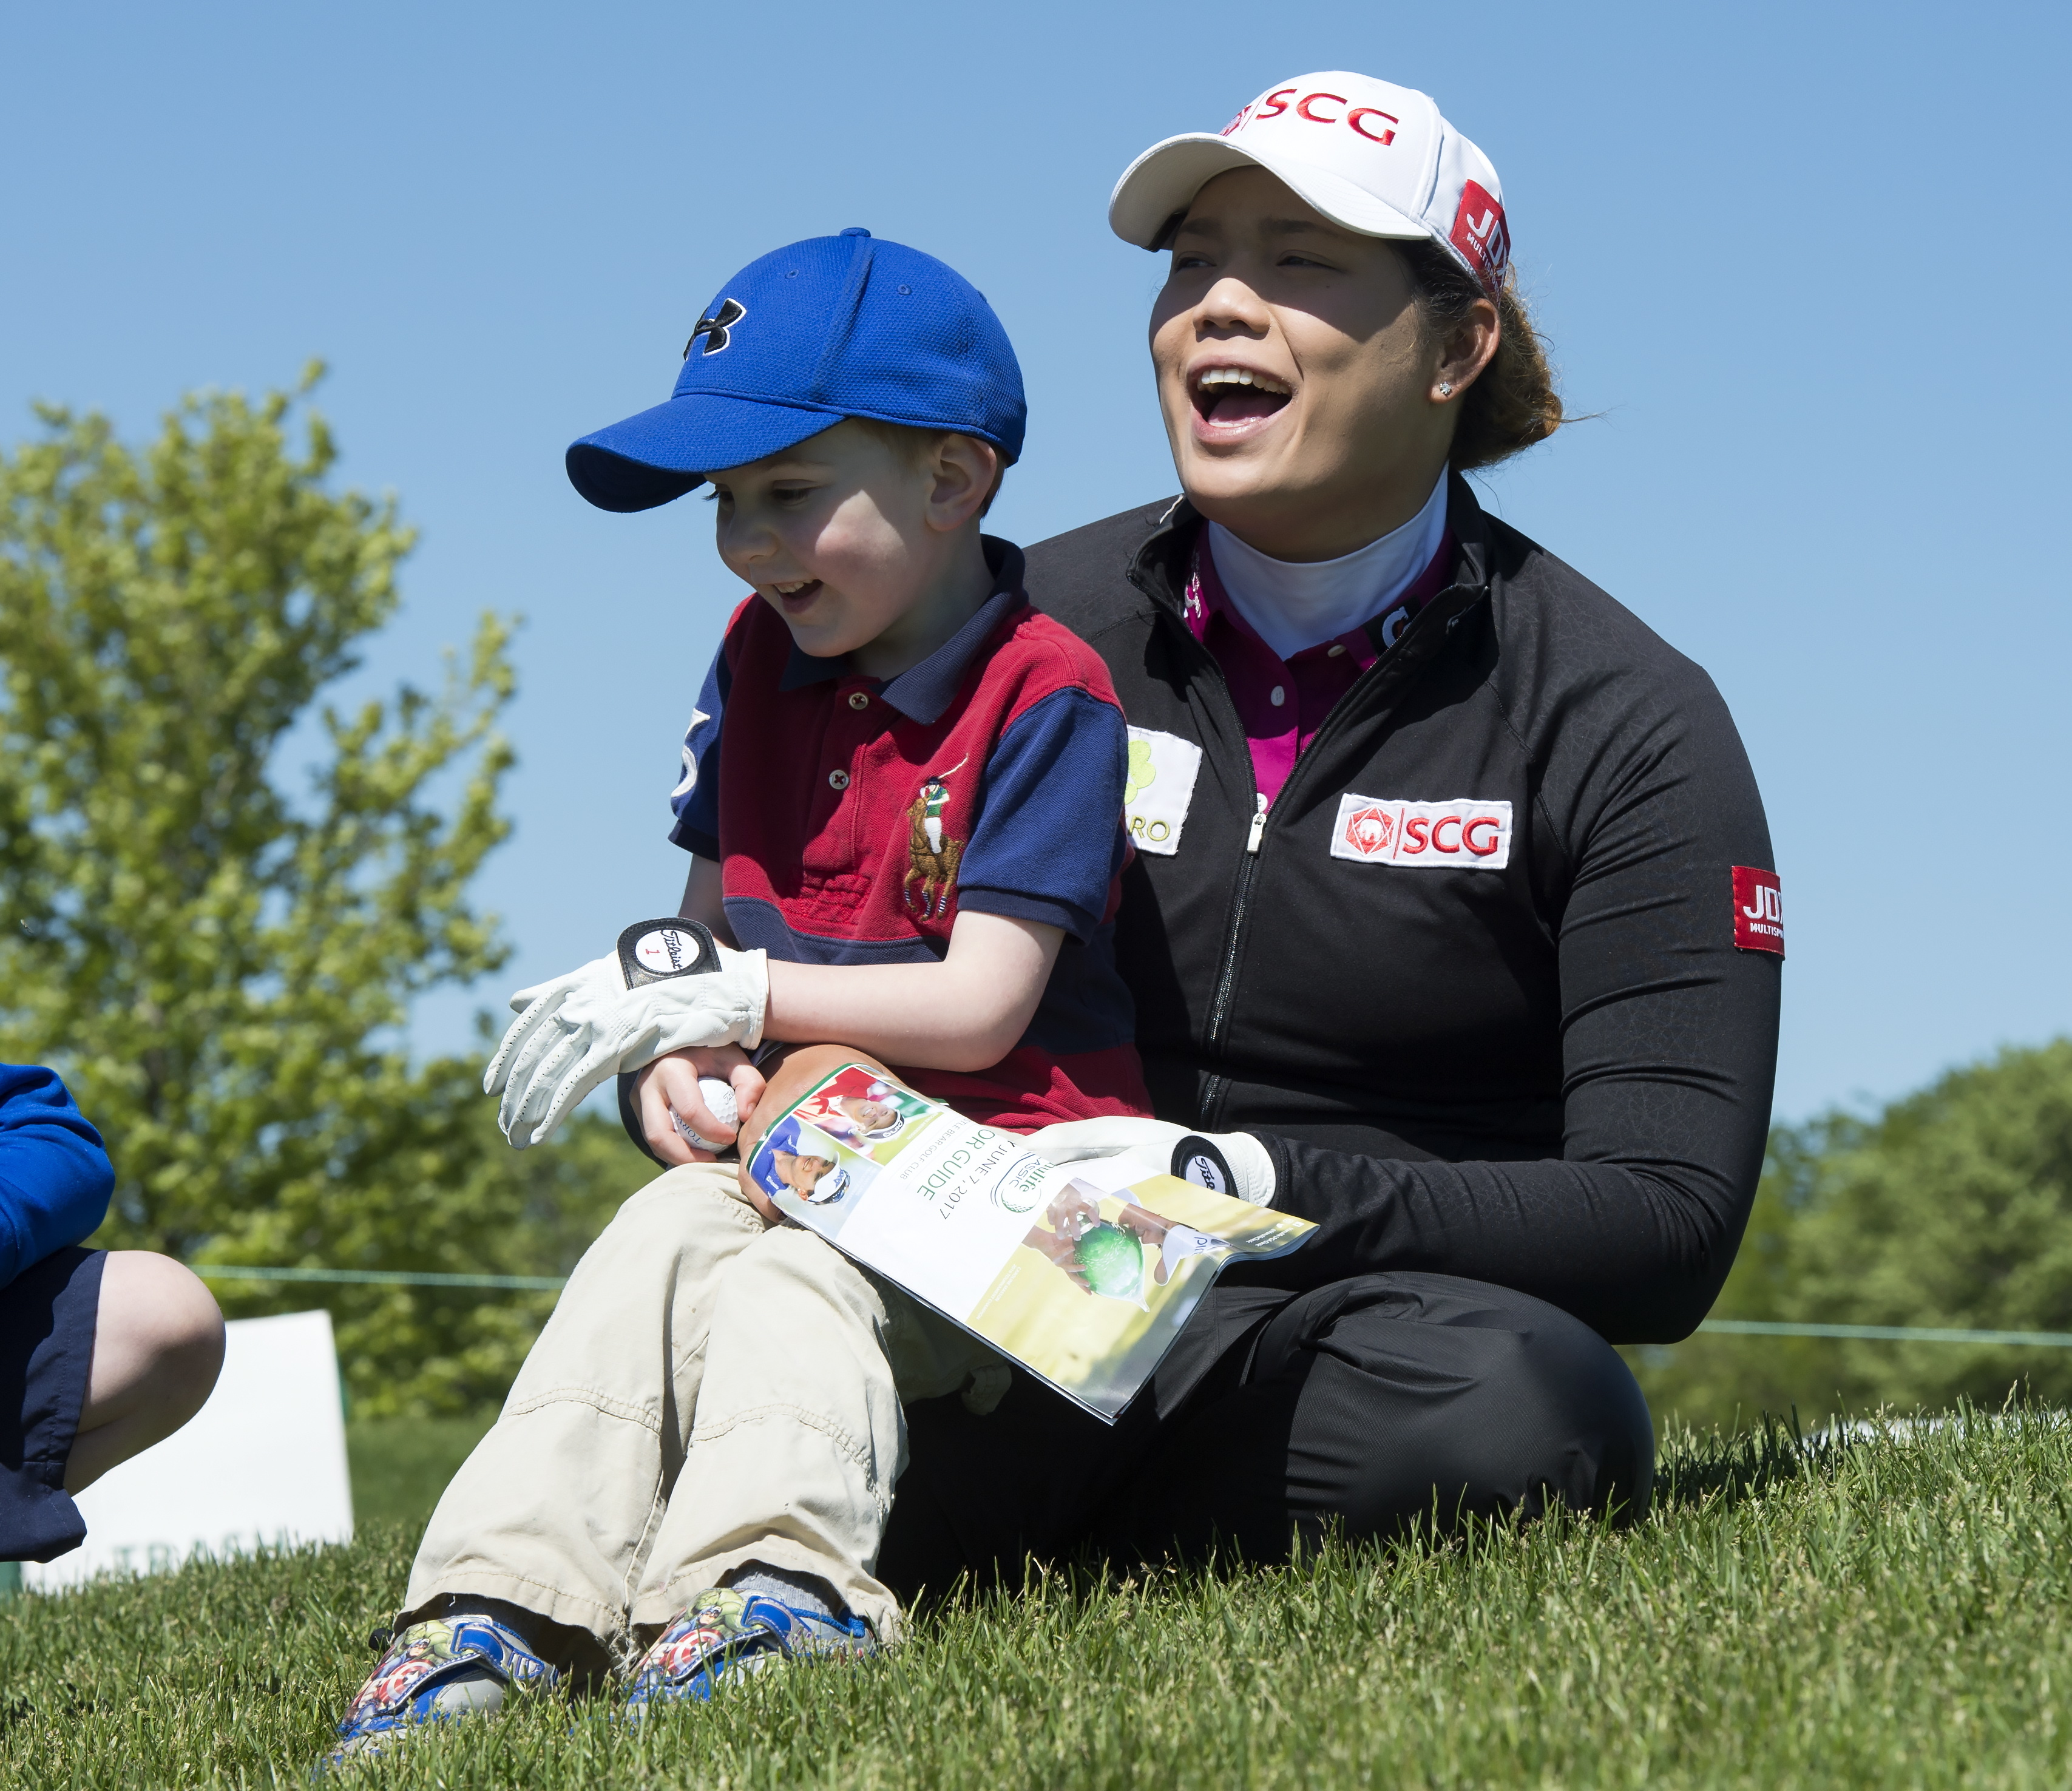 Ariya Jutanugarn, of Thailand, plays with a young fan during the pro-am for the LPGA golf tournament at Whistle Bear Golf Club in Cambridge, Ontario, Wednesday June 7, 2017. (Frank Gunn/The Canadian Press via AP)